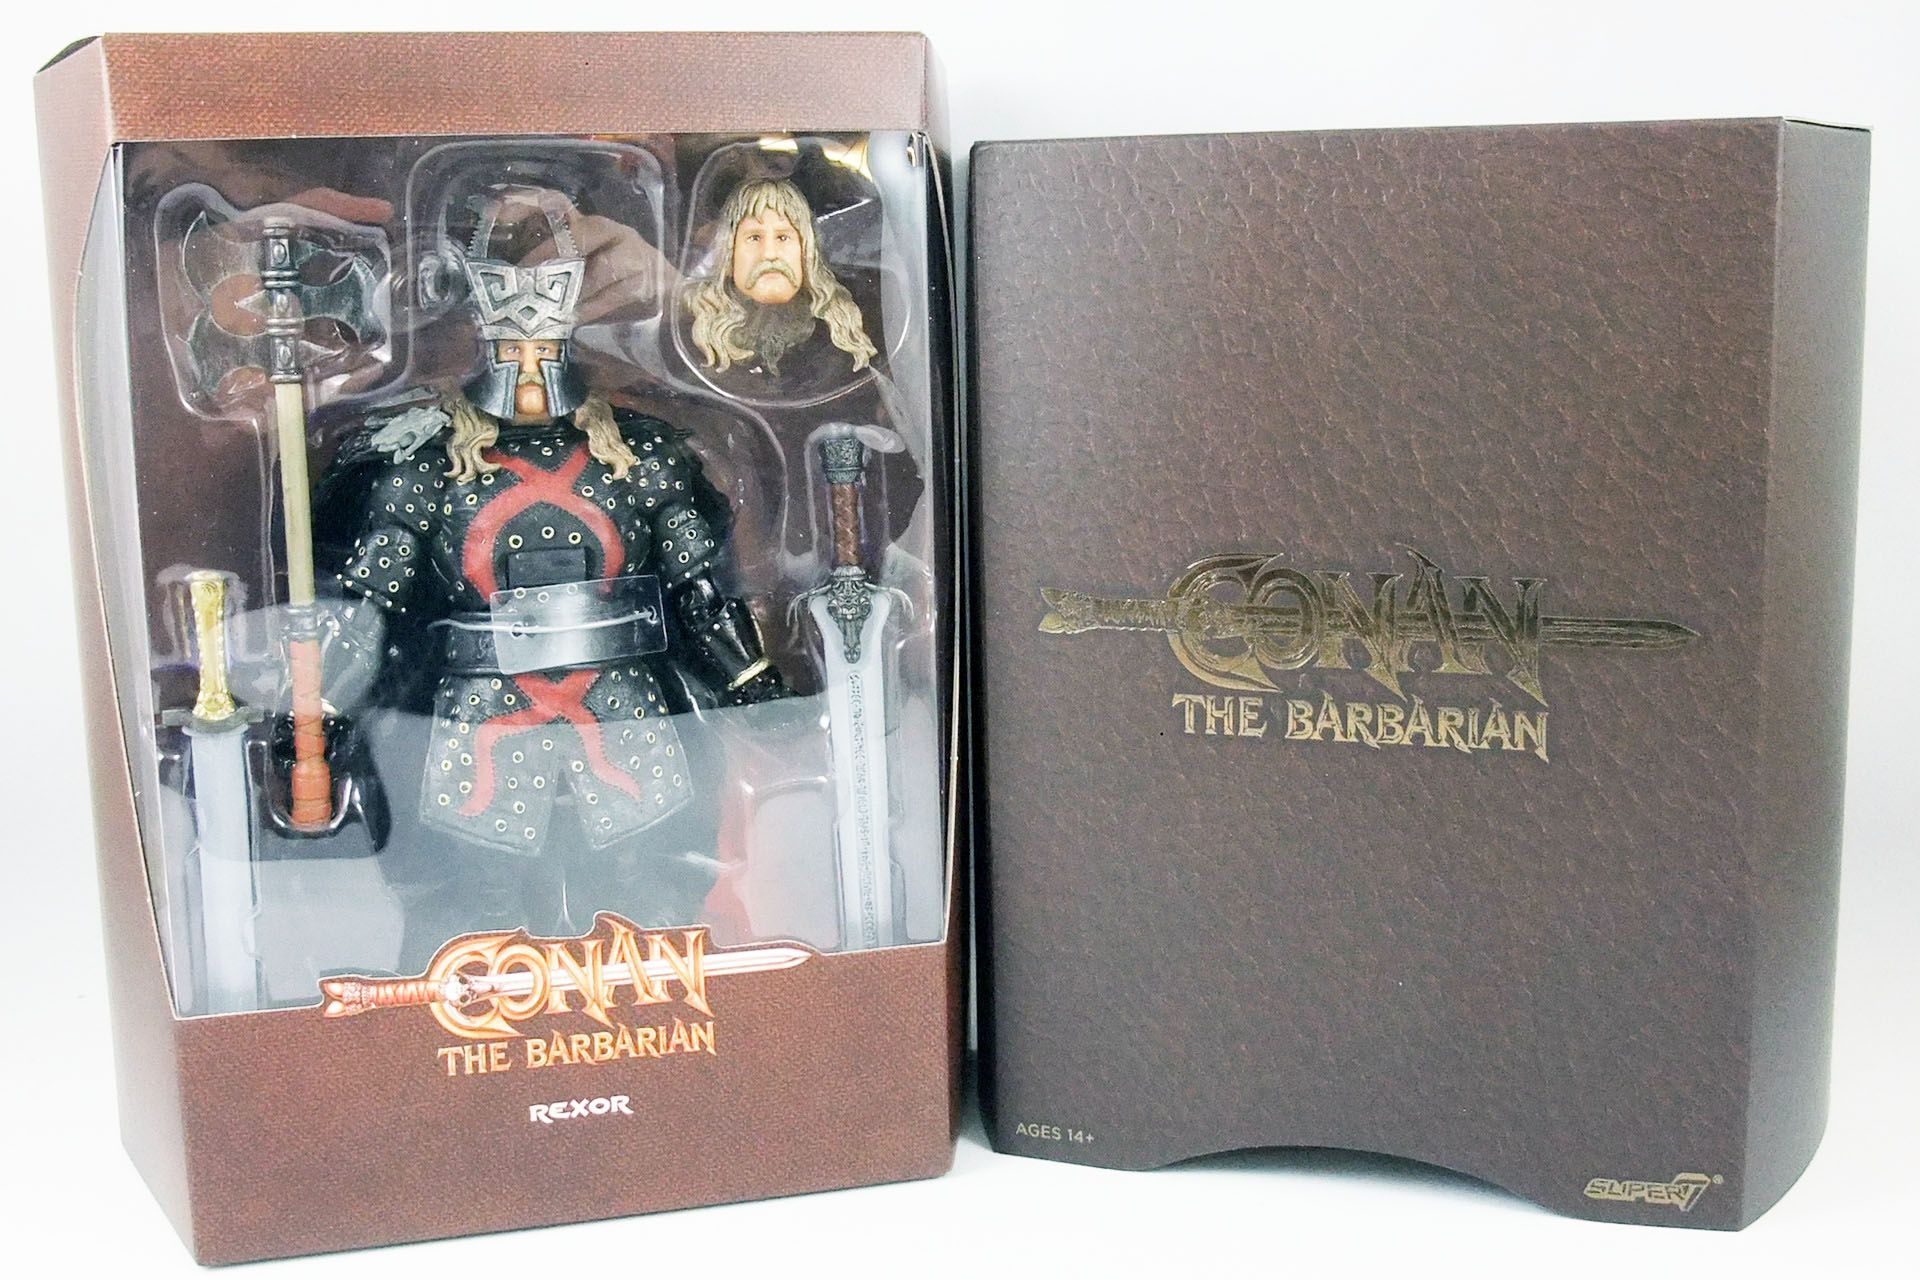 Conan le Barbare (1982 Movie) - Super7 - Rexor - Figurine Ultimate deluxe 17cm